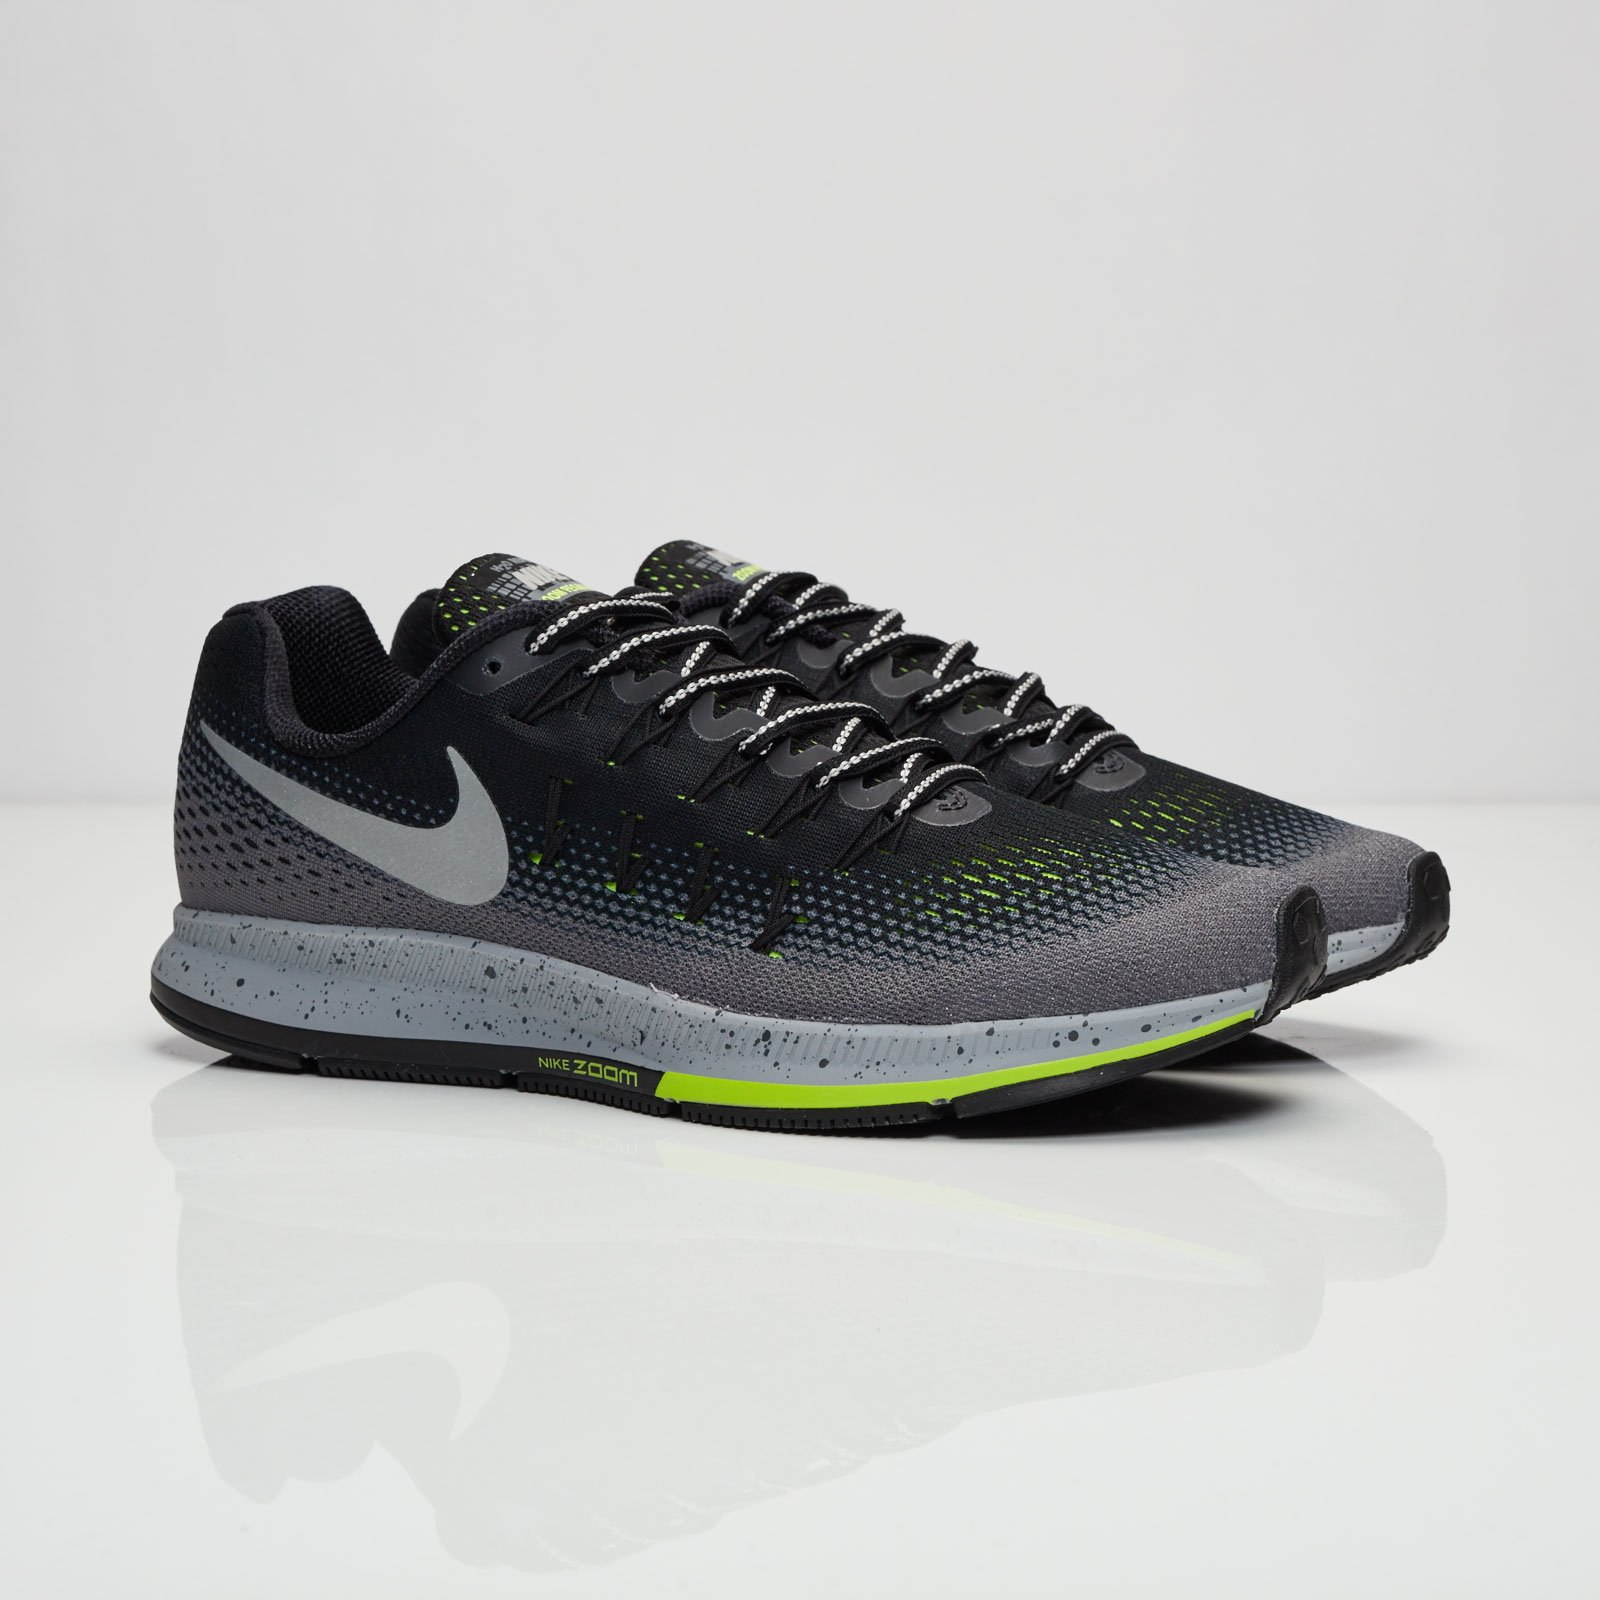 7e22a24896f Nike Air Zoom Pegasus 33 Shield - 849564-001 - Sneakersnstuff ...